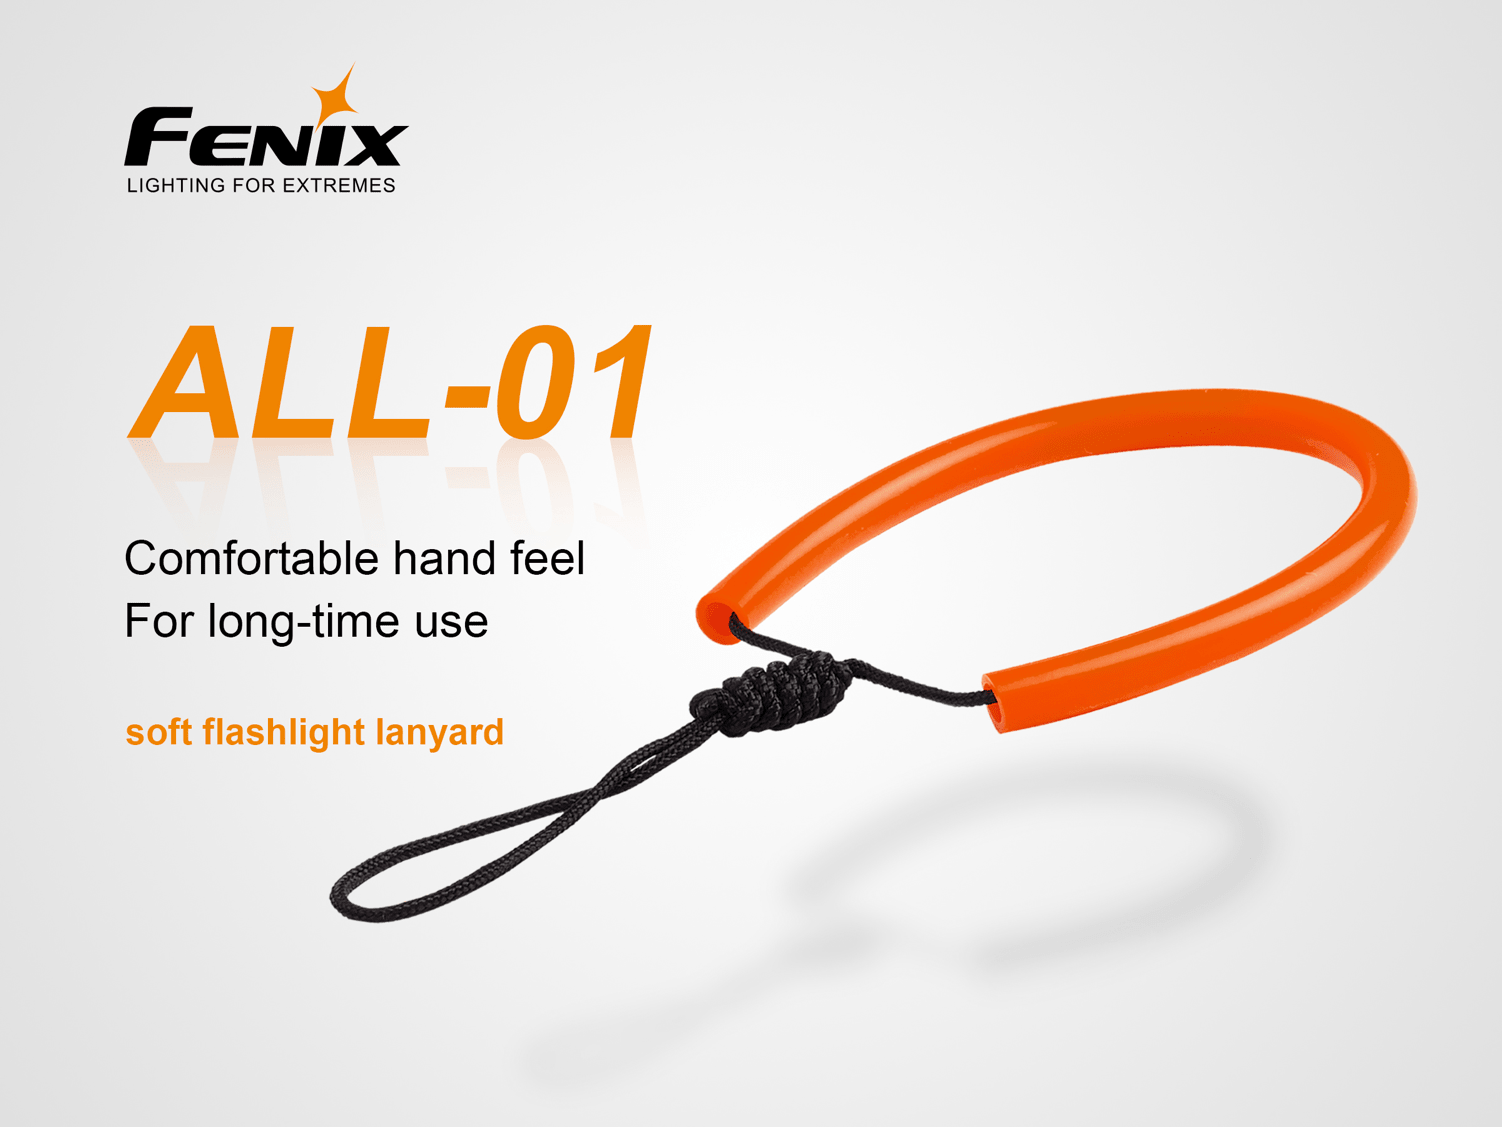 Fenix ALL 01 Soft Flashlight Lanyard, Strong strength Lanyard for grip on Large Heavy Flashlights, Comfortable and Soft Lanyard for Torches